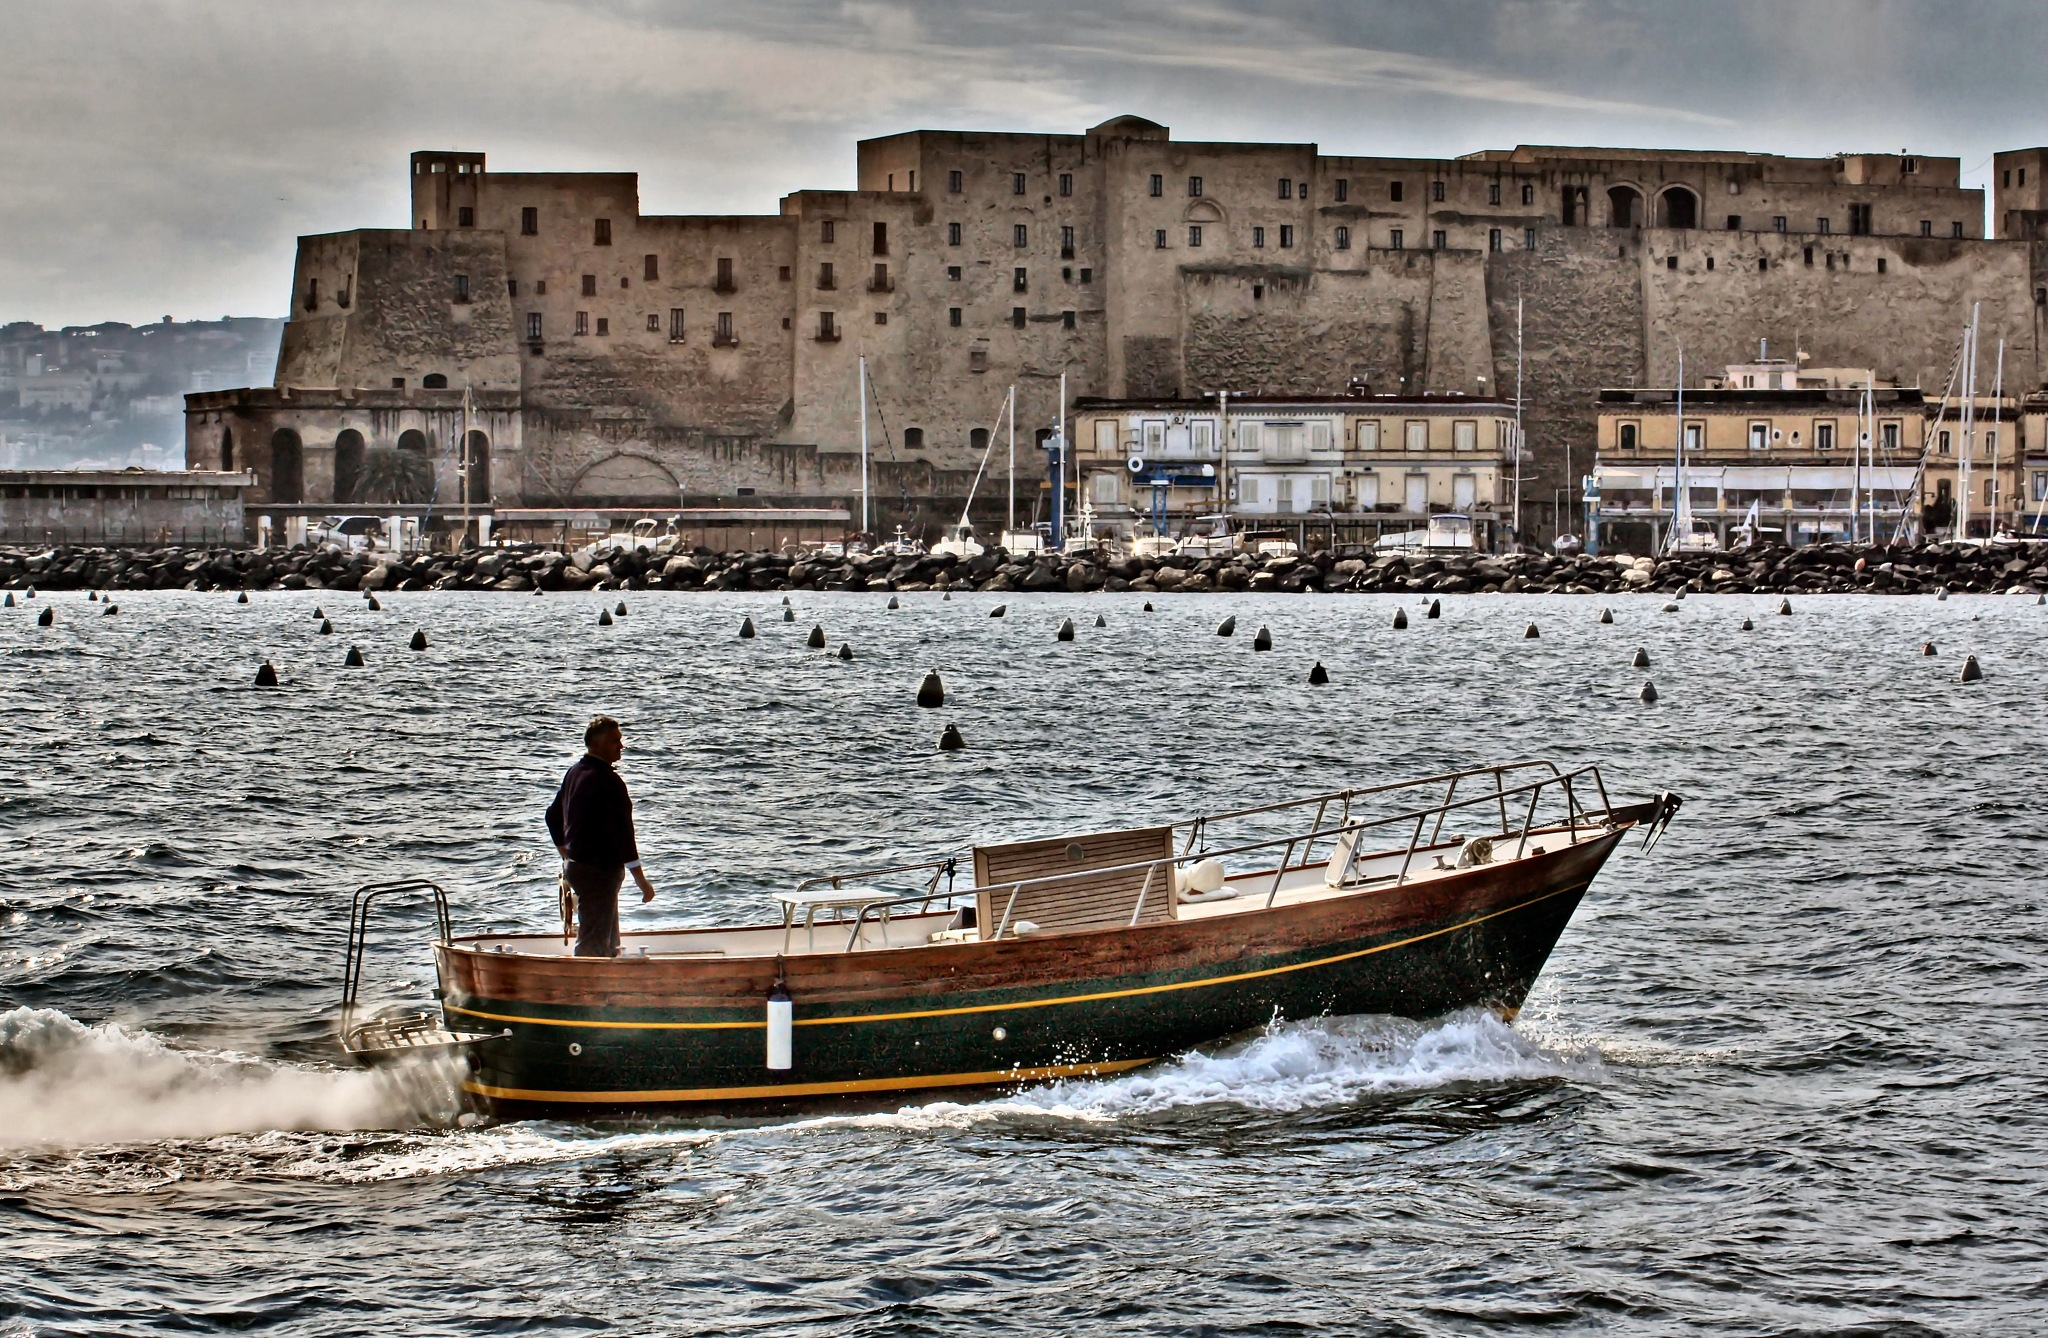 The return of the fisherman - Castel dell'ovo - Naples by Mariano Arizzi Novelli